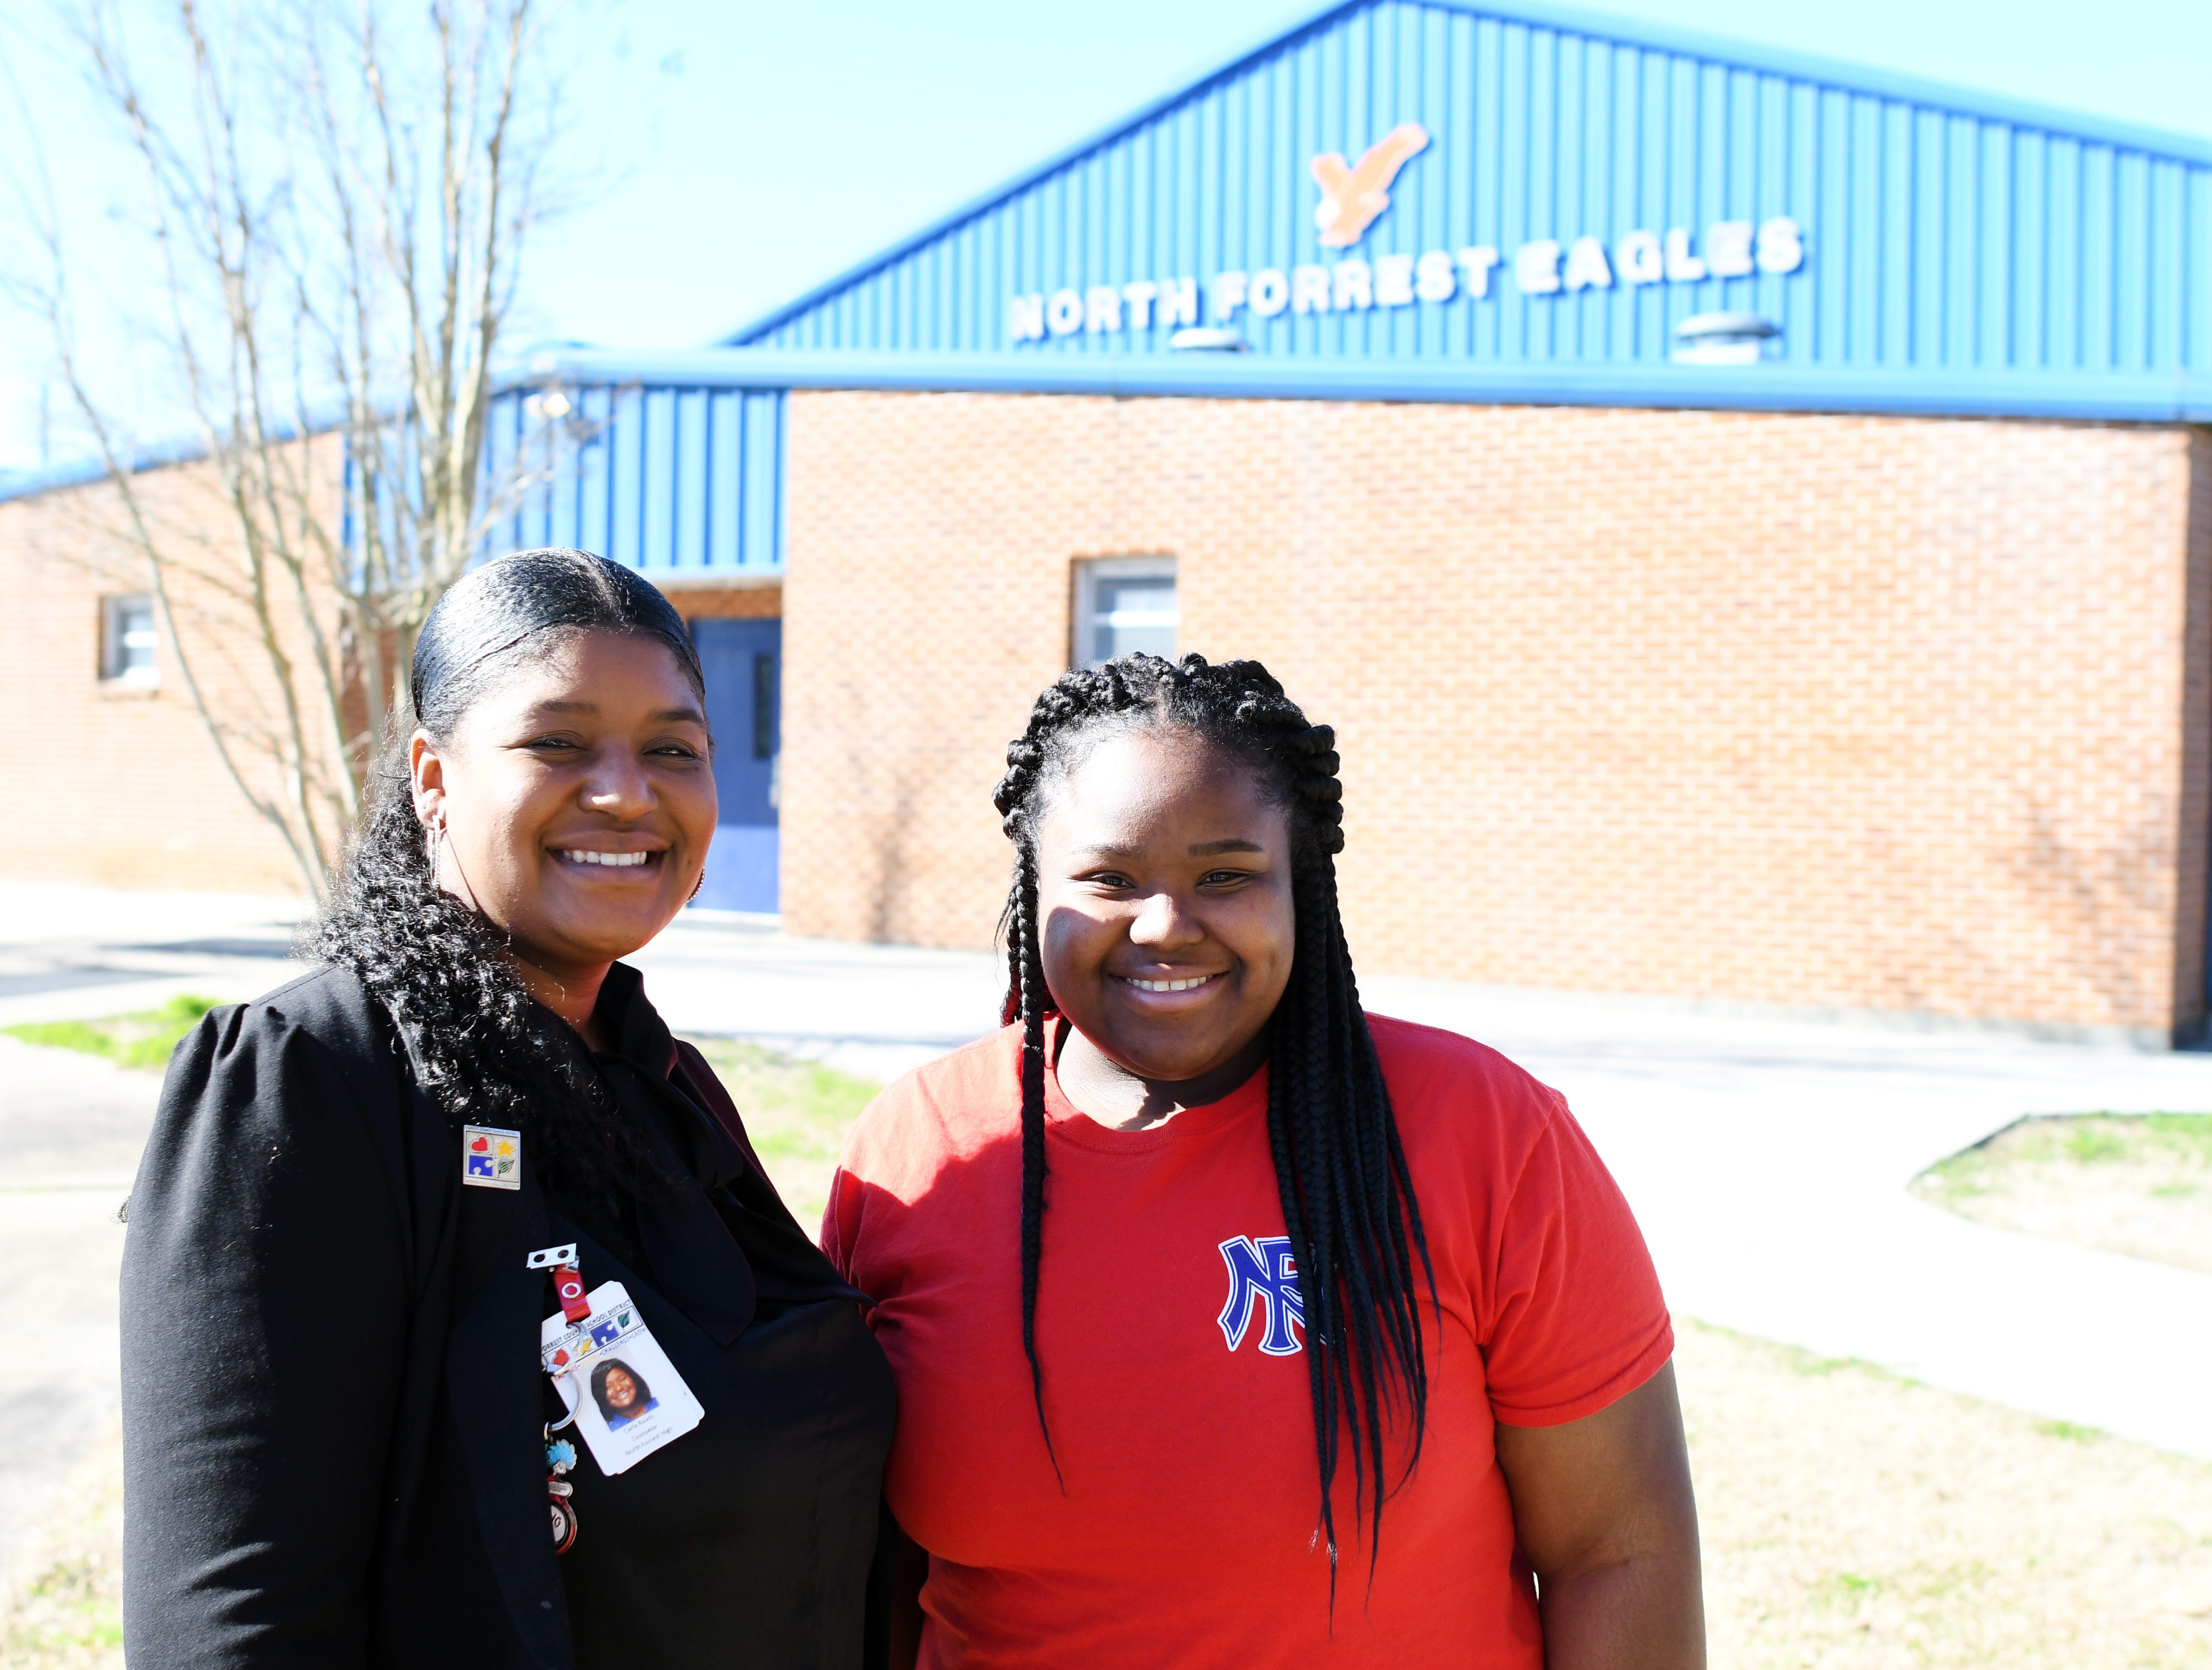 Senior Kamery Earl, right, stands with North Forrest High School counselor Carla Rawls. Rawls helps seniors throughout their year as they prepare for the future.